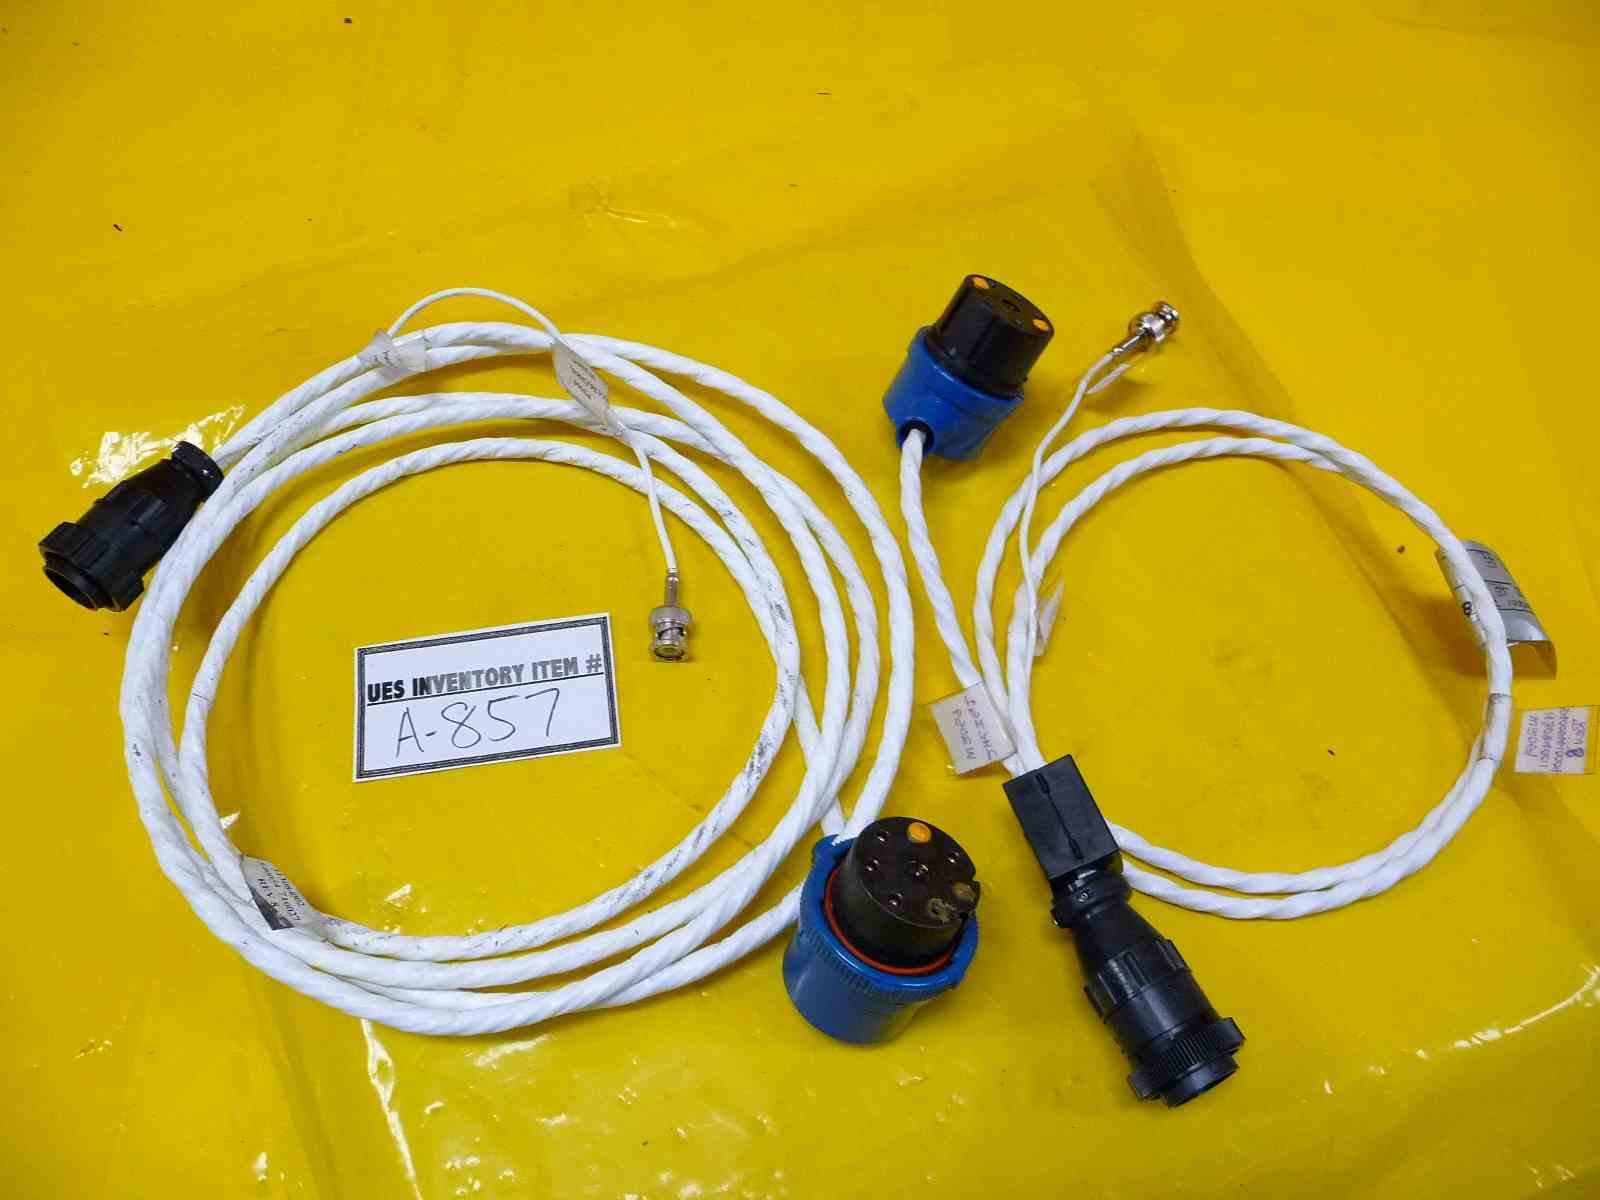 Granville-Phillips 113084001 Convectron Gauge Cables Lot of 2 Used Working